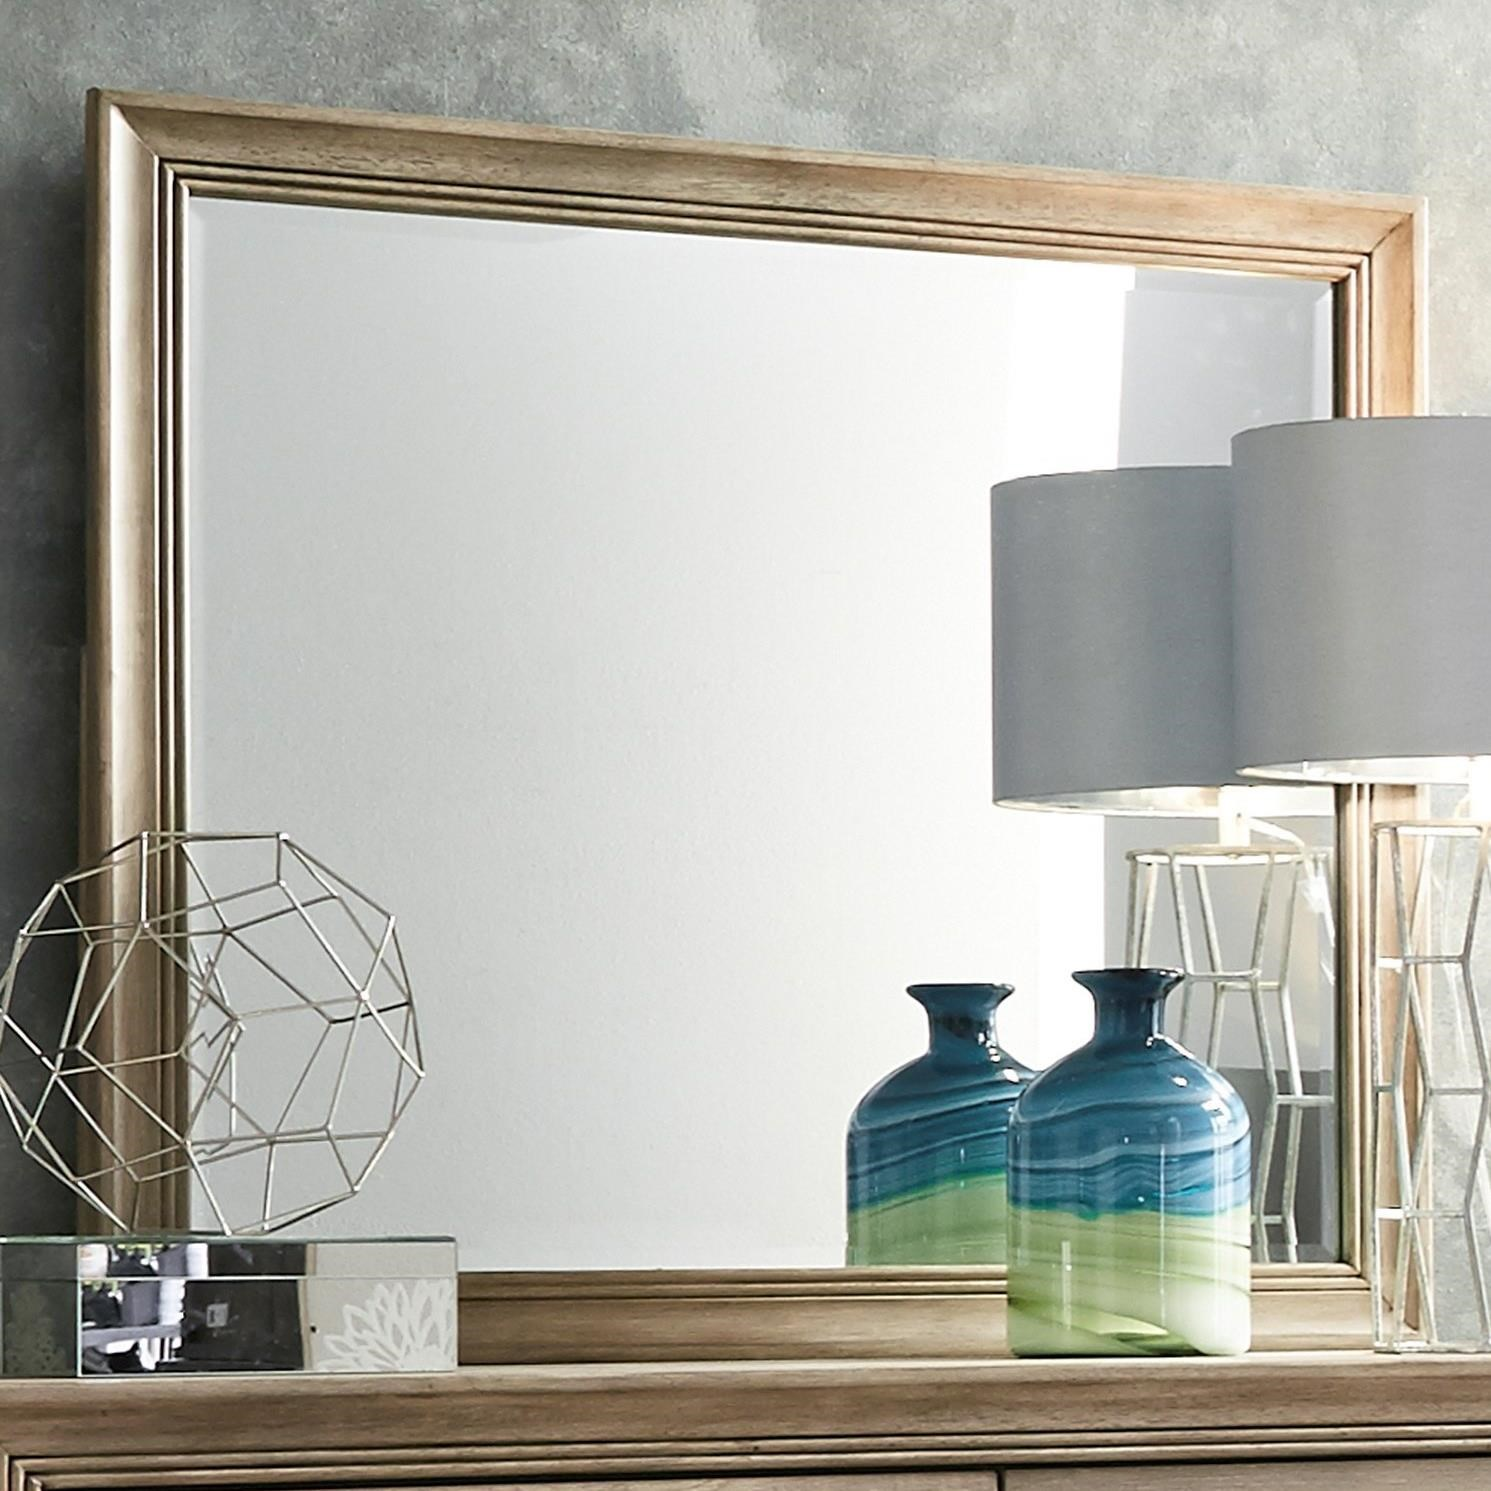 Liberty Furniture Sun Valley 439 Mirror with Wood Frame - Item Number: 439-BR51